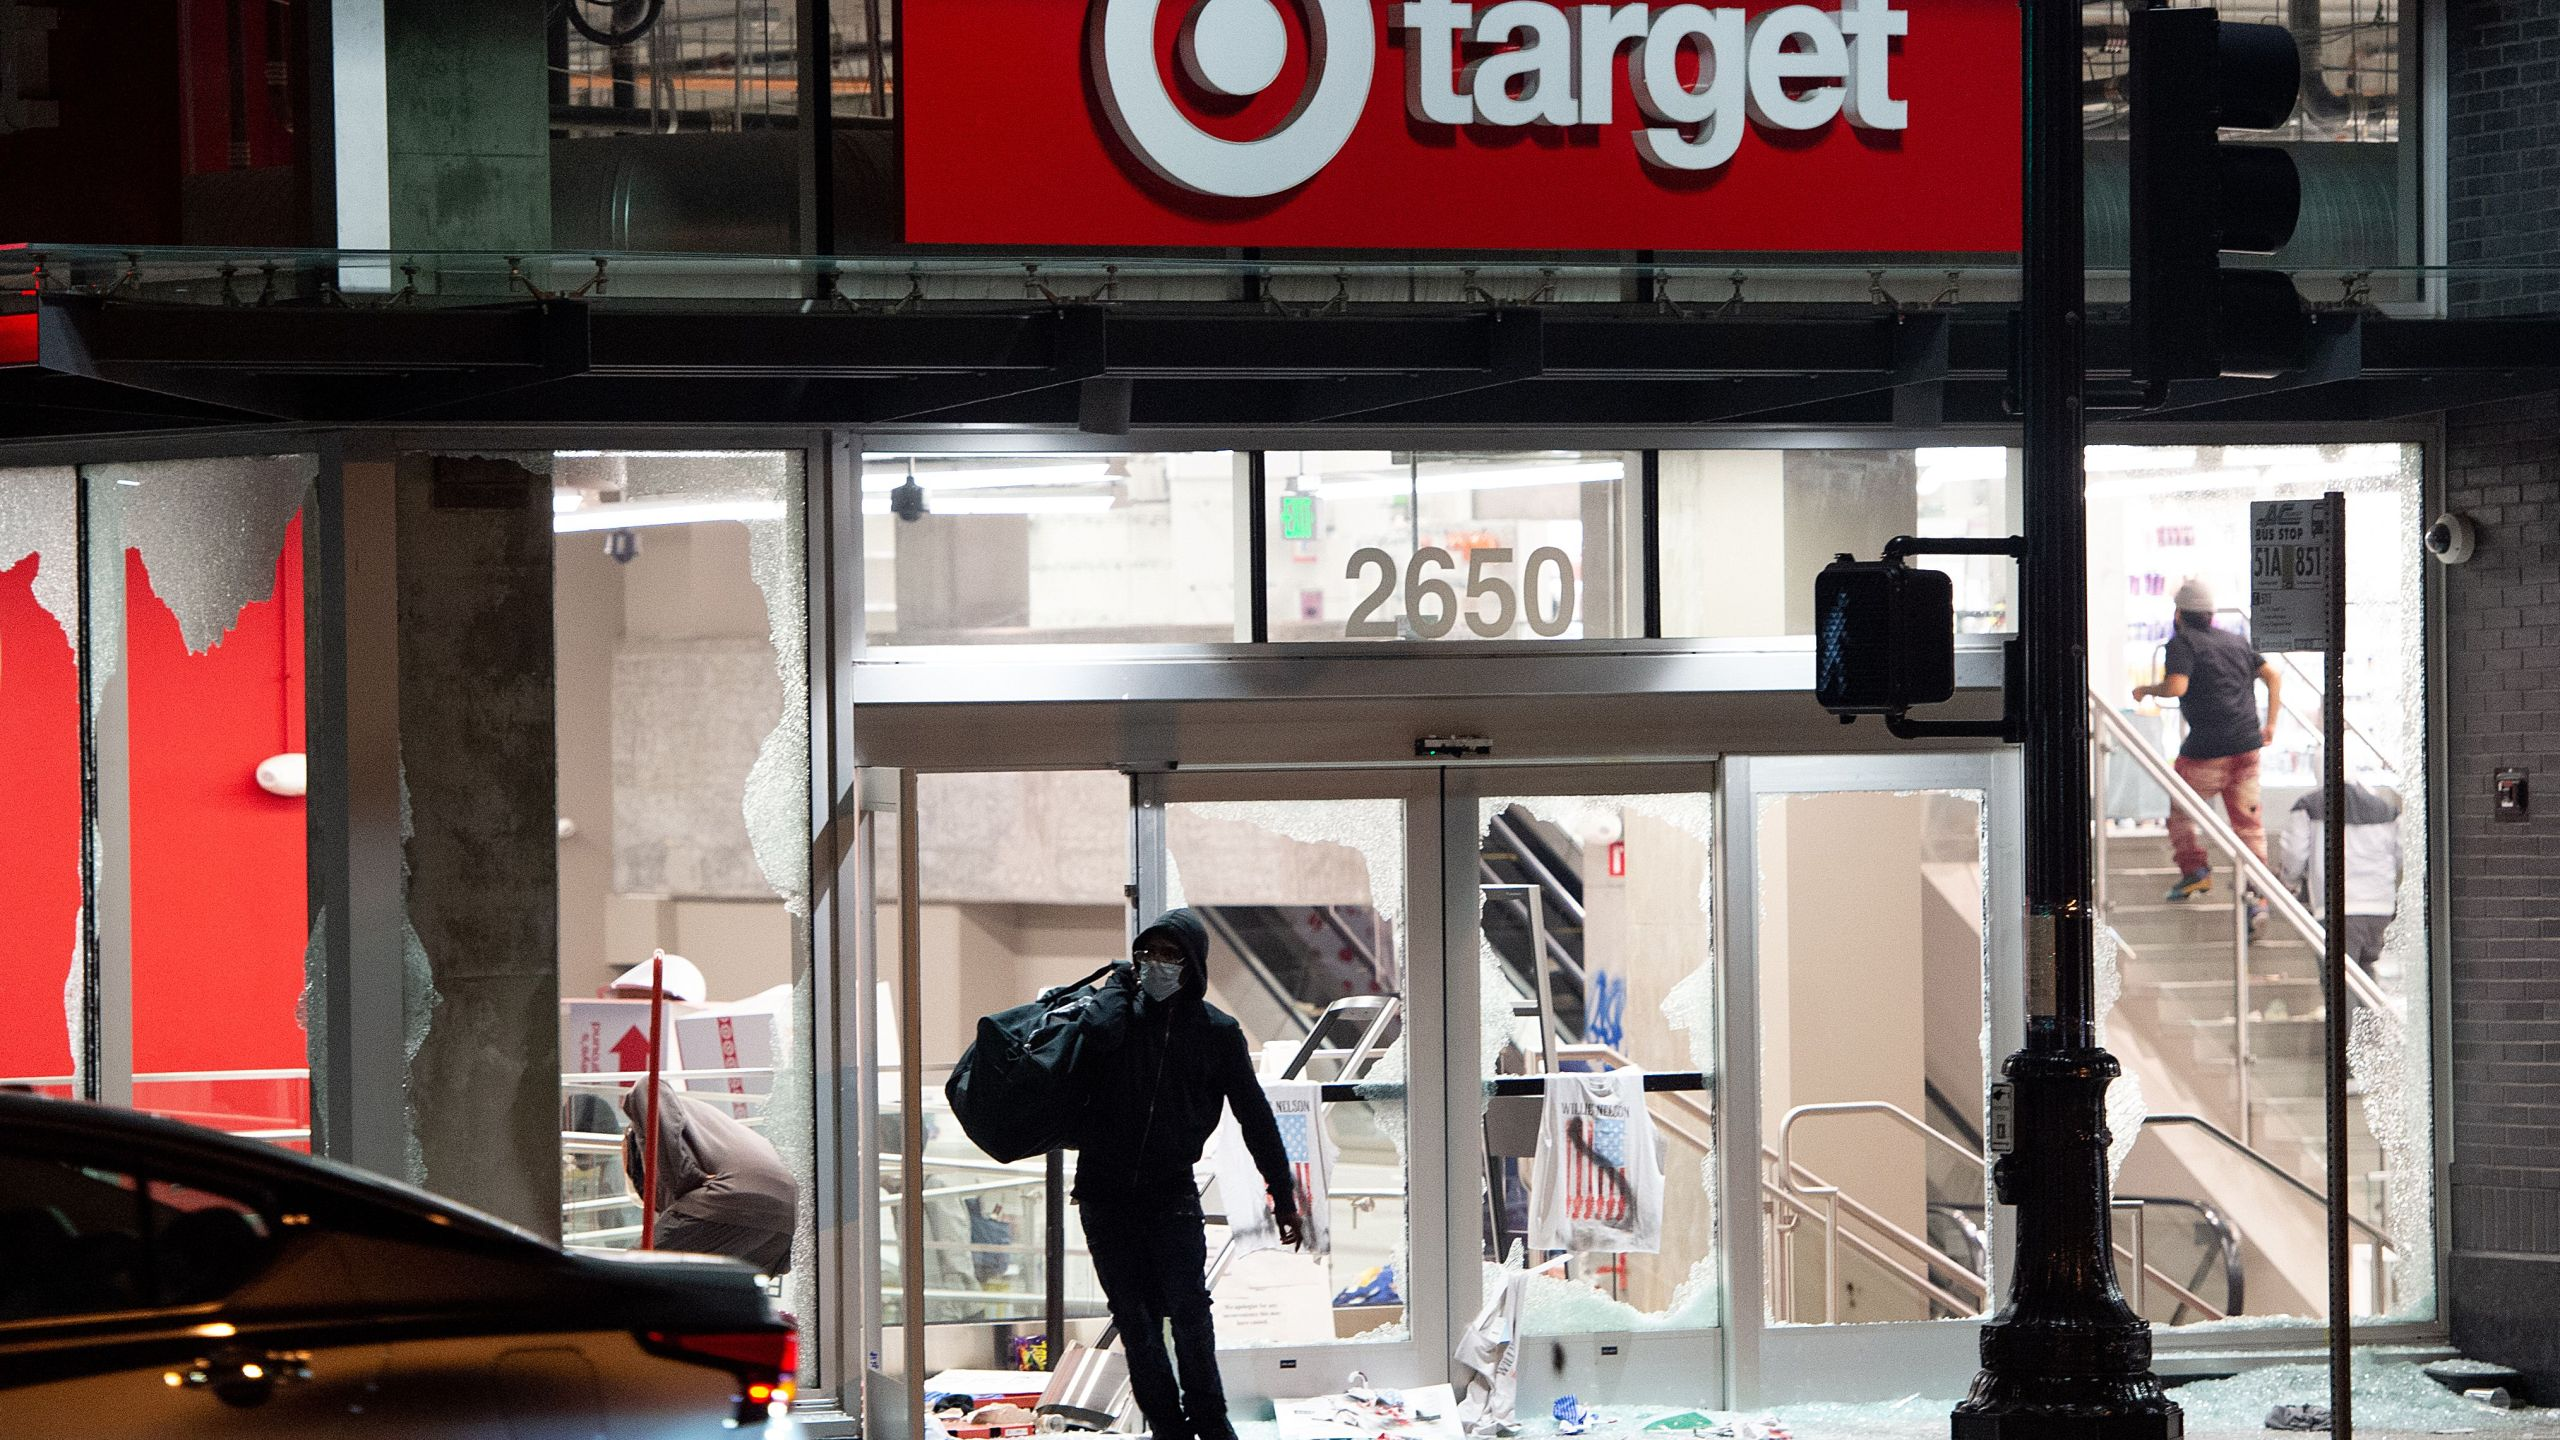 A looter steals items from a Target store as protesters face off with police in Oakland, Calif. on May 30, 2020. Protesters are rallying against police brutality nationwide following the death of George Floyd, a black man who died after a white policeman kneeled on his neck for several minutes. (JOSH EDELSON/AFP via Getty Images)